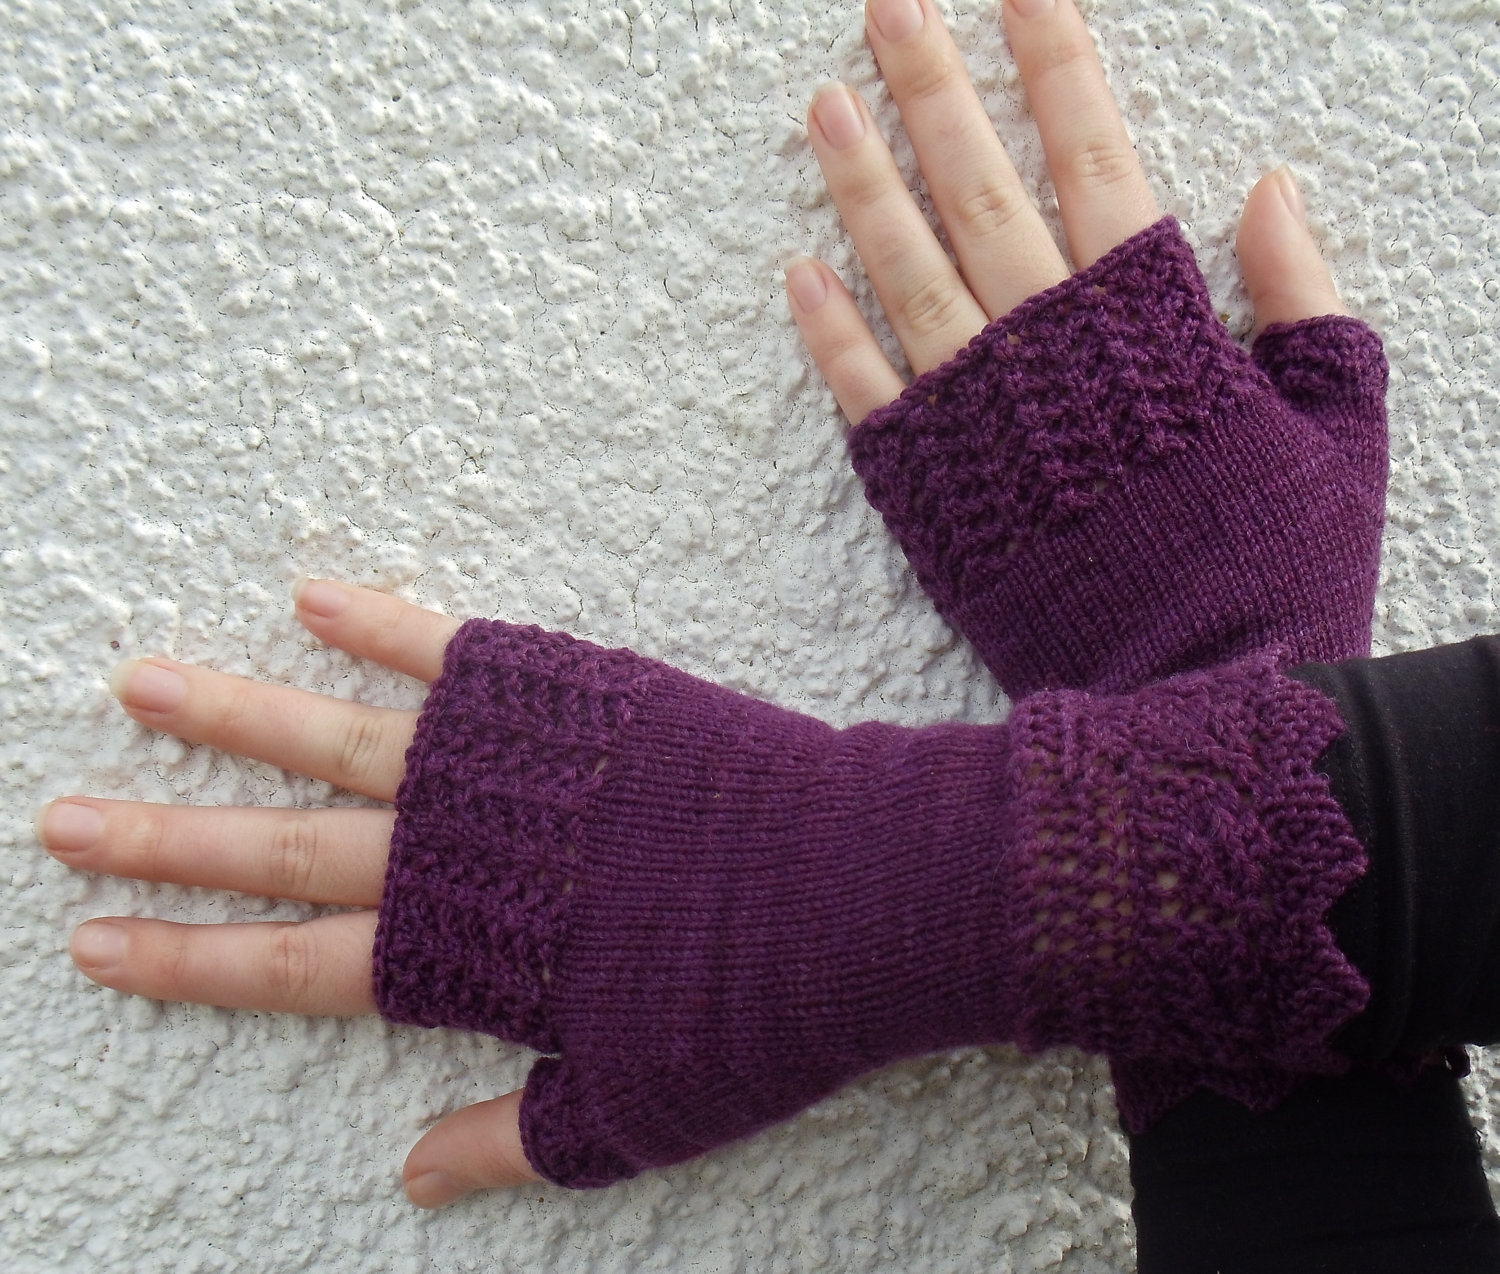 Easy Mitten Knitting Pattern Free : Fingerless Gloves Knitting Pattern A Knitting Blog